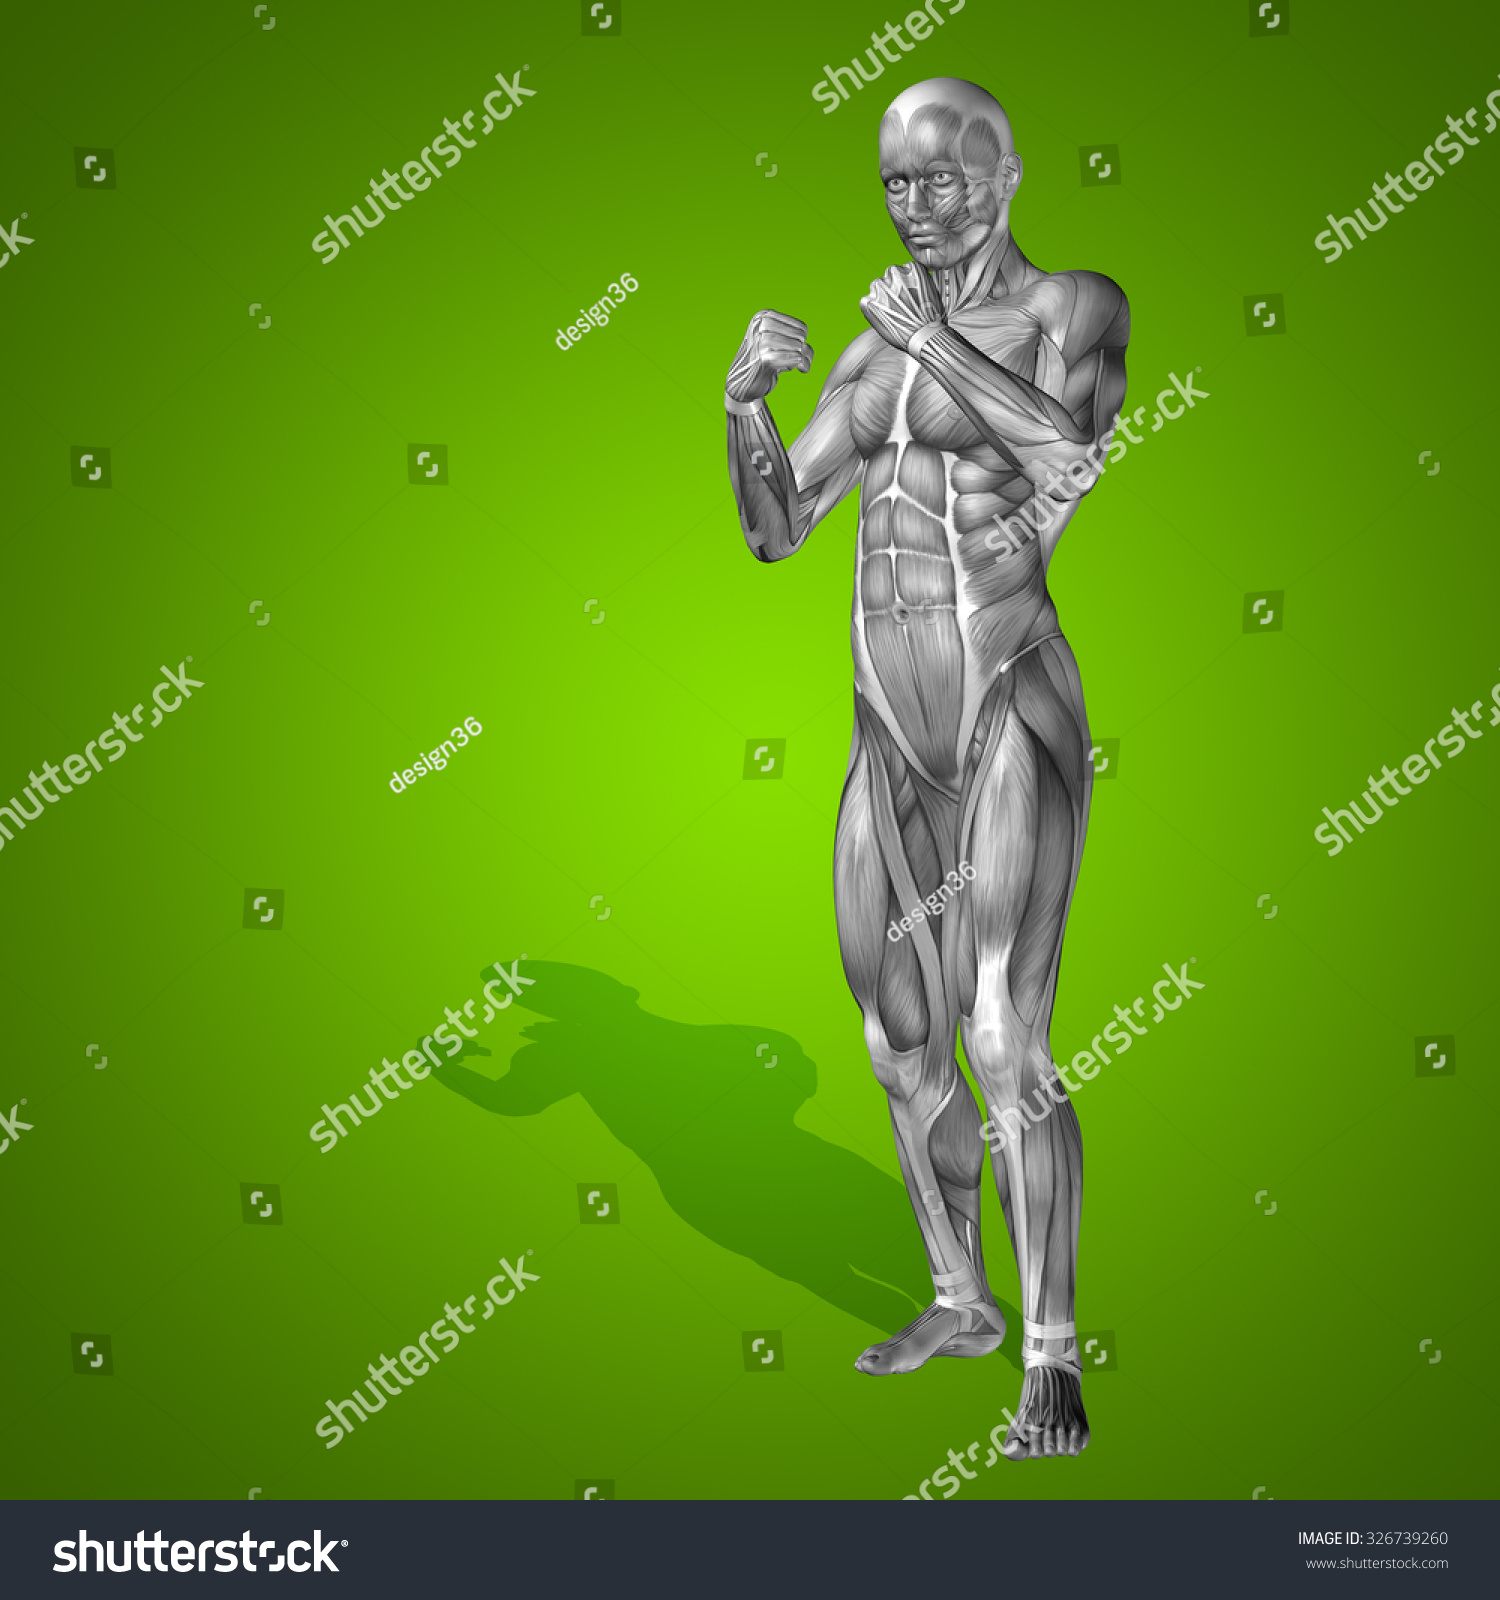 Conceptual Strong Human Man 3d Anatomy Body With Muscle For Health Illustration Graphics Contest Full Diagram Sport On Green Background Medicine Male Muscular Medical